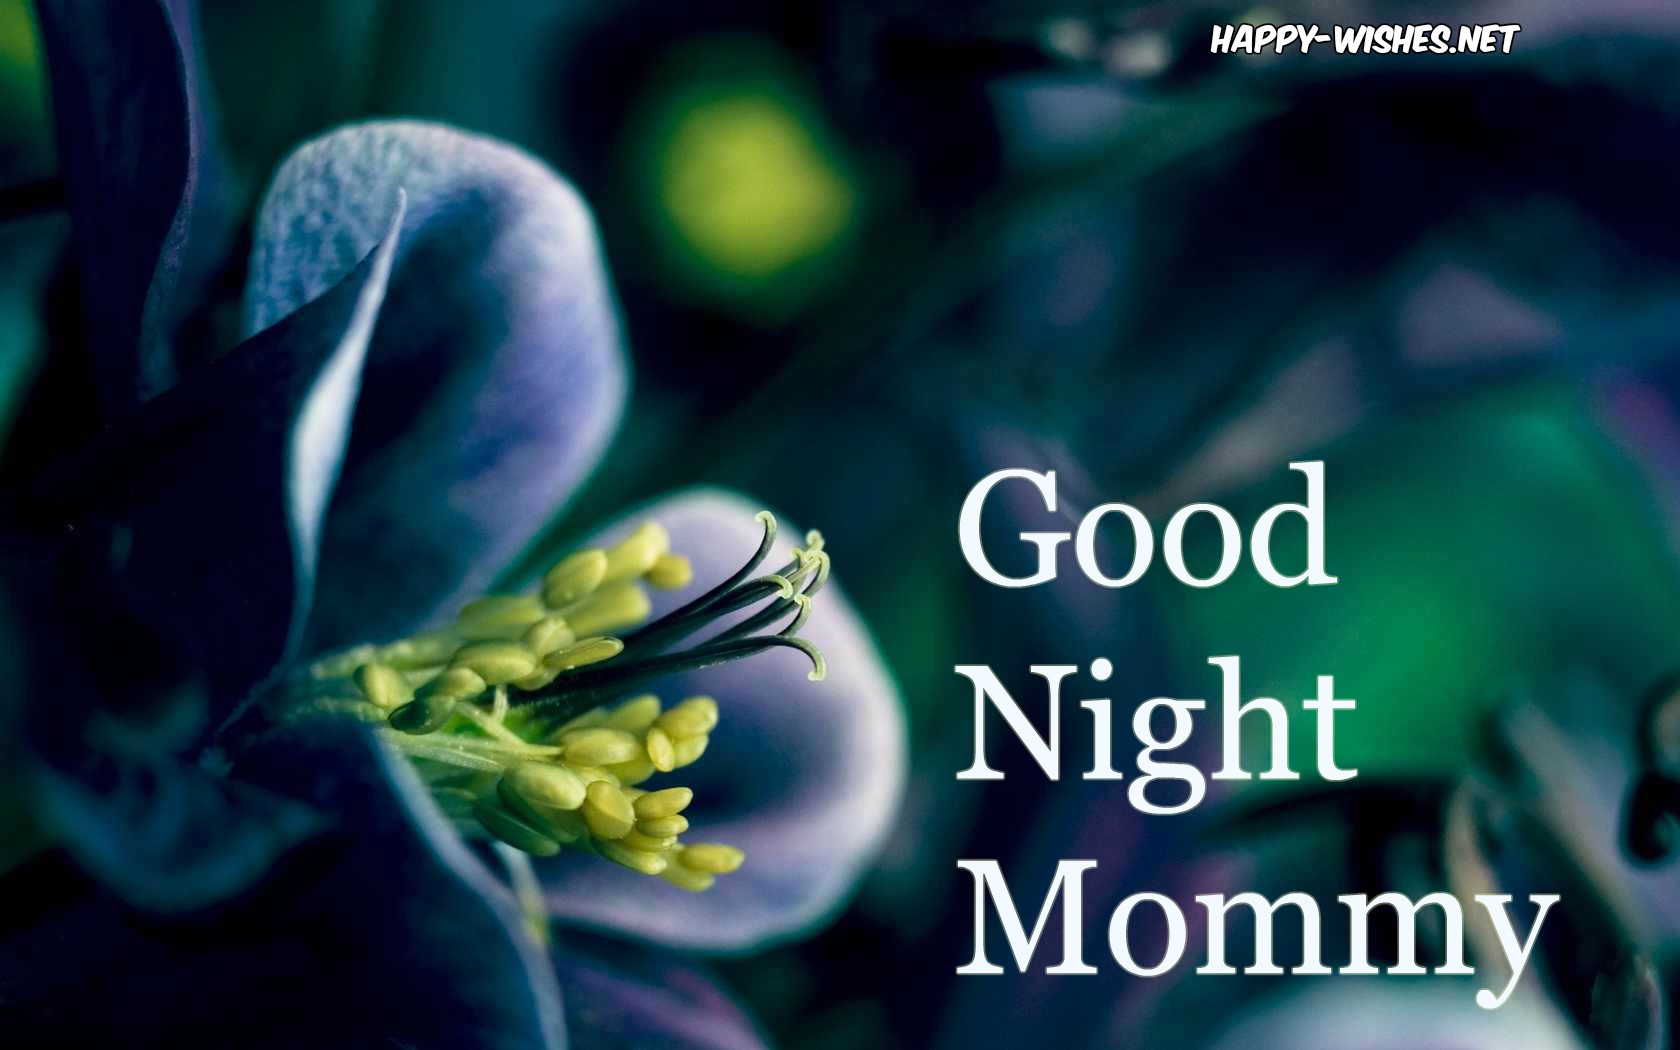 Good Night images for mom